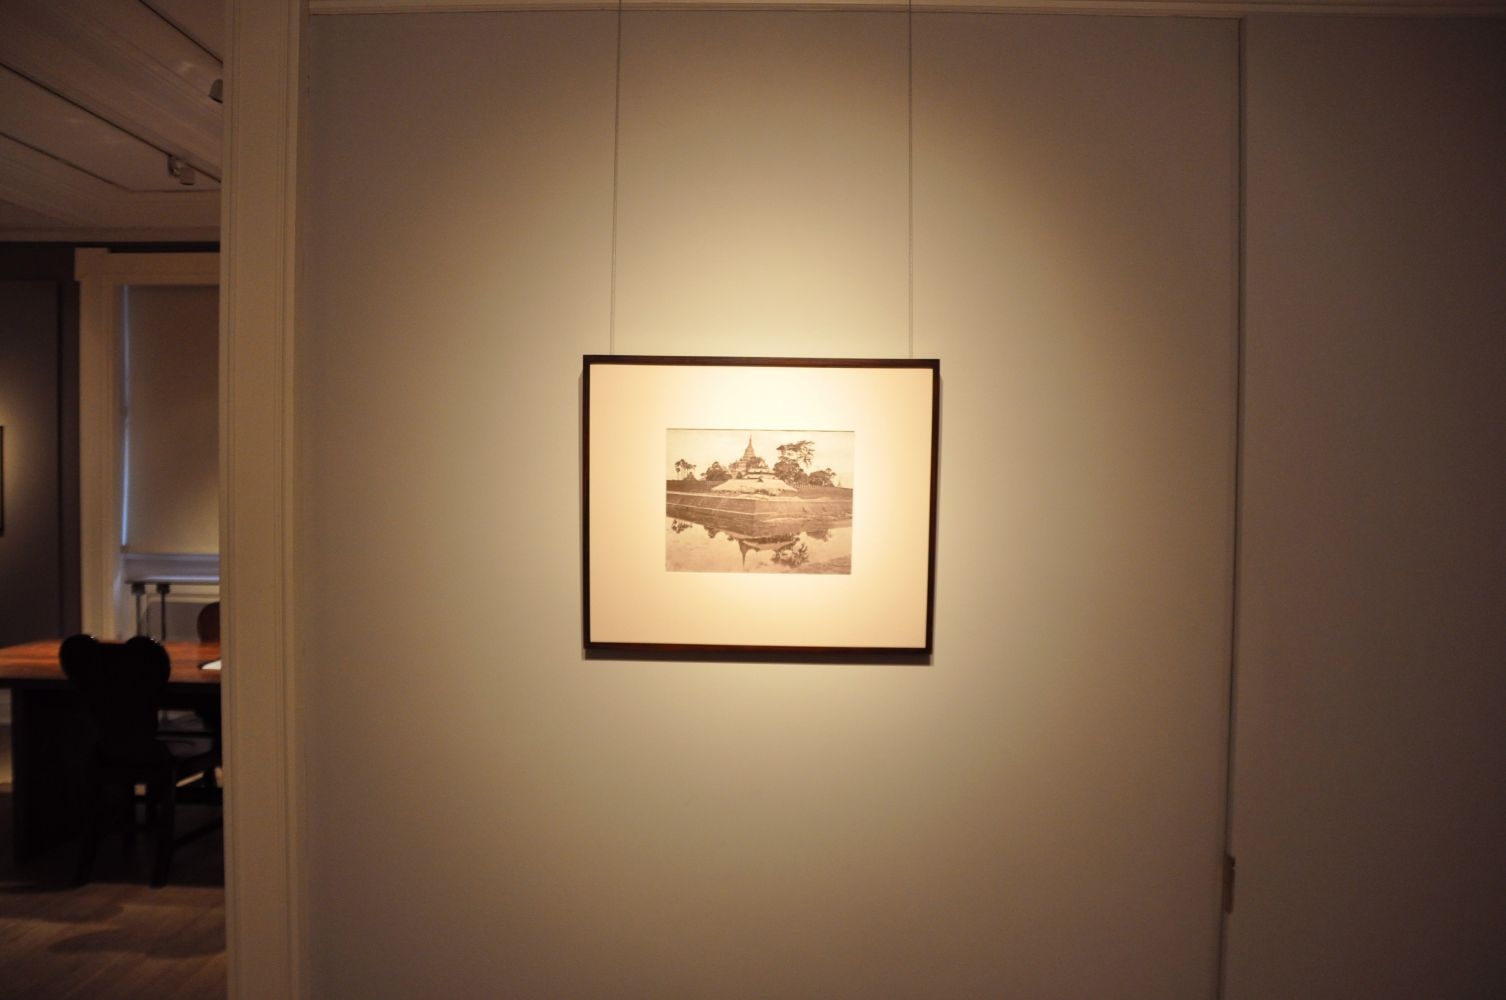 Linnaeus Tripe Photographs of Burma and India Exhibition Installation View